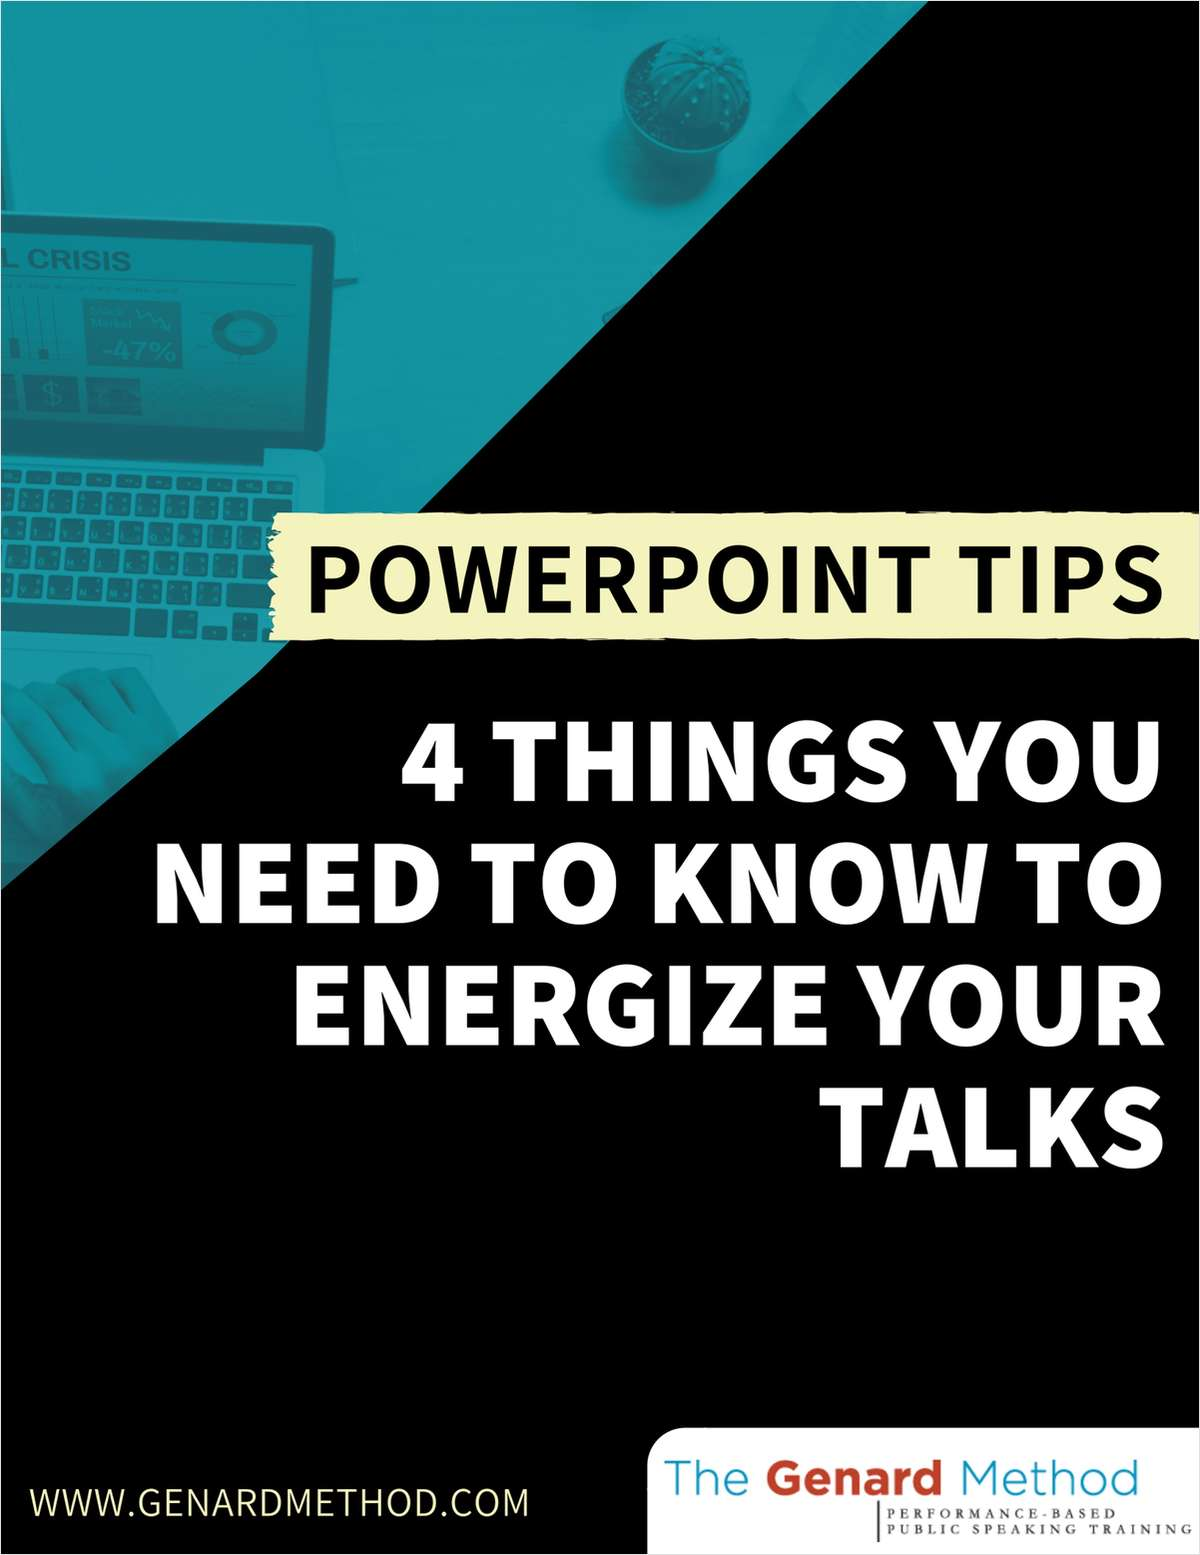 PowerPoint Tips - 4 Things You Need to Know to Energize Your Talks